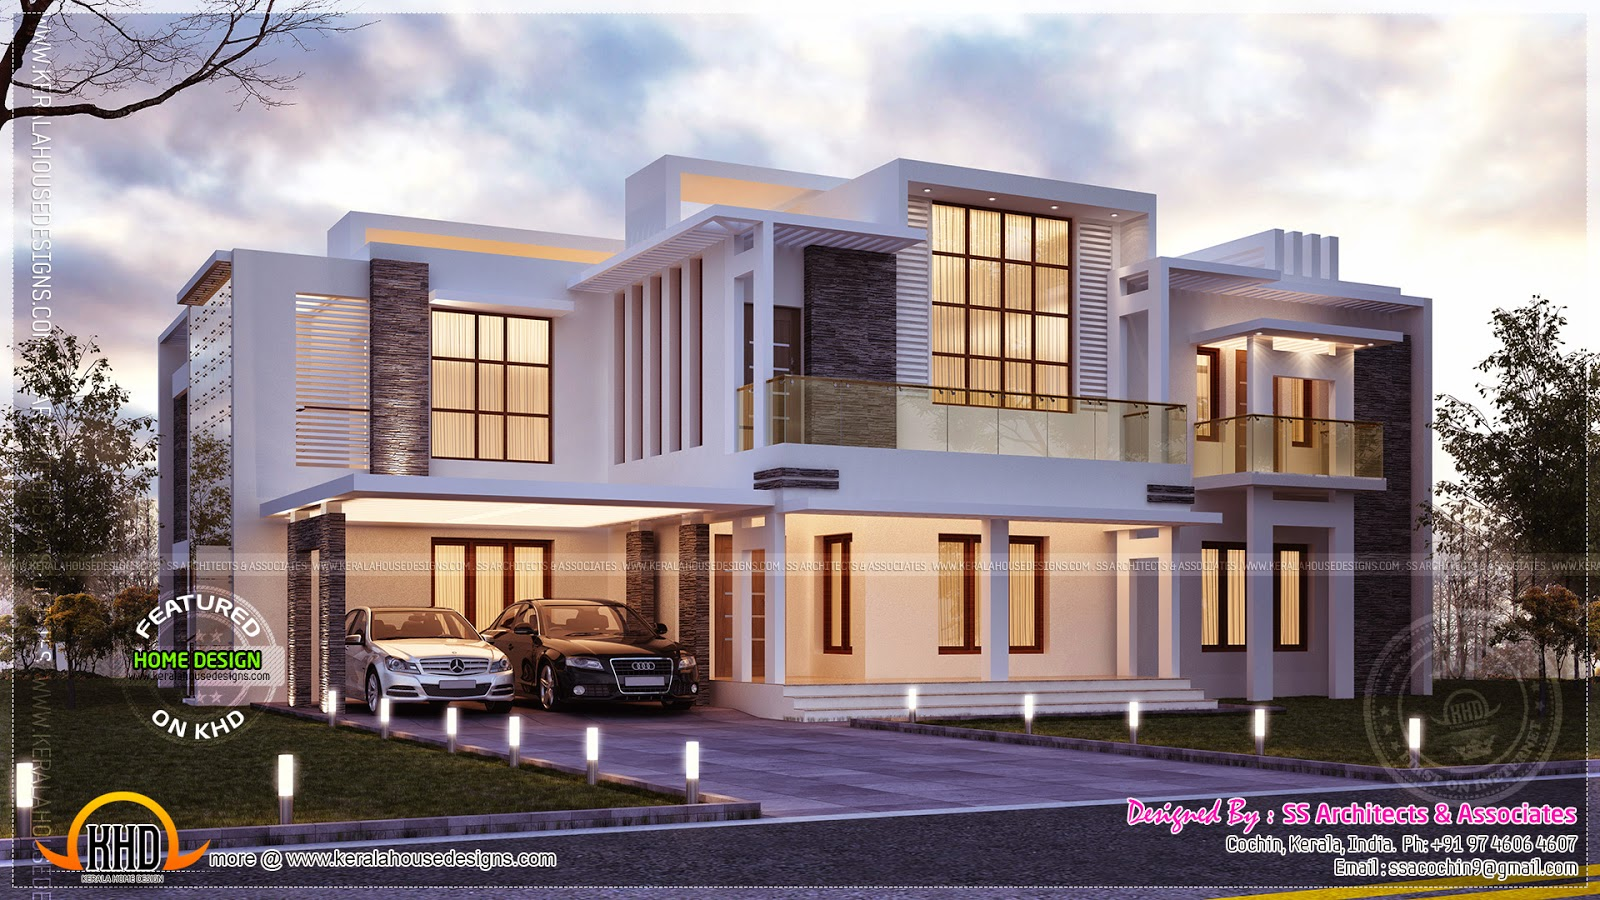 Best One Story House Plans 4000 To 5000 Sq Ft House